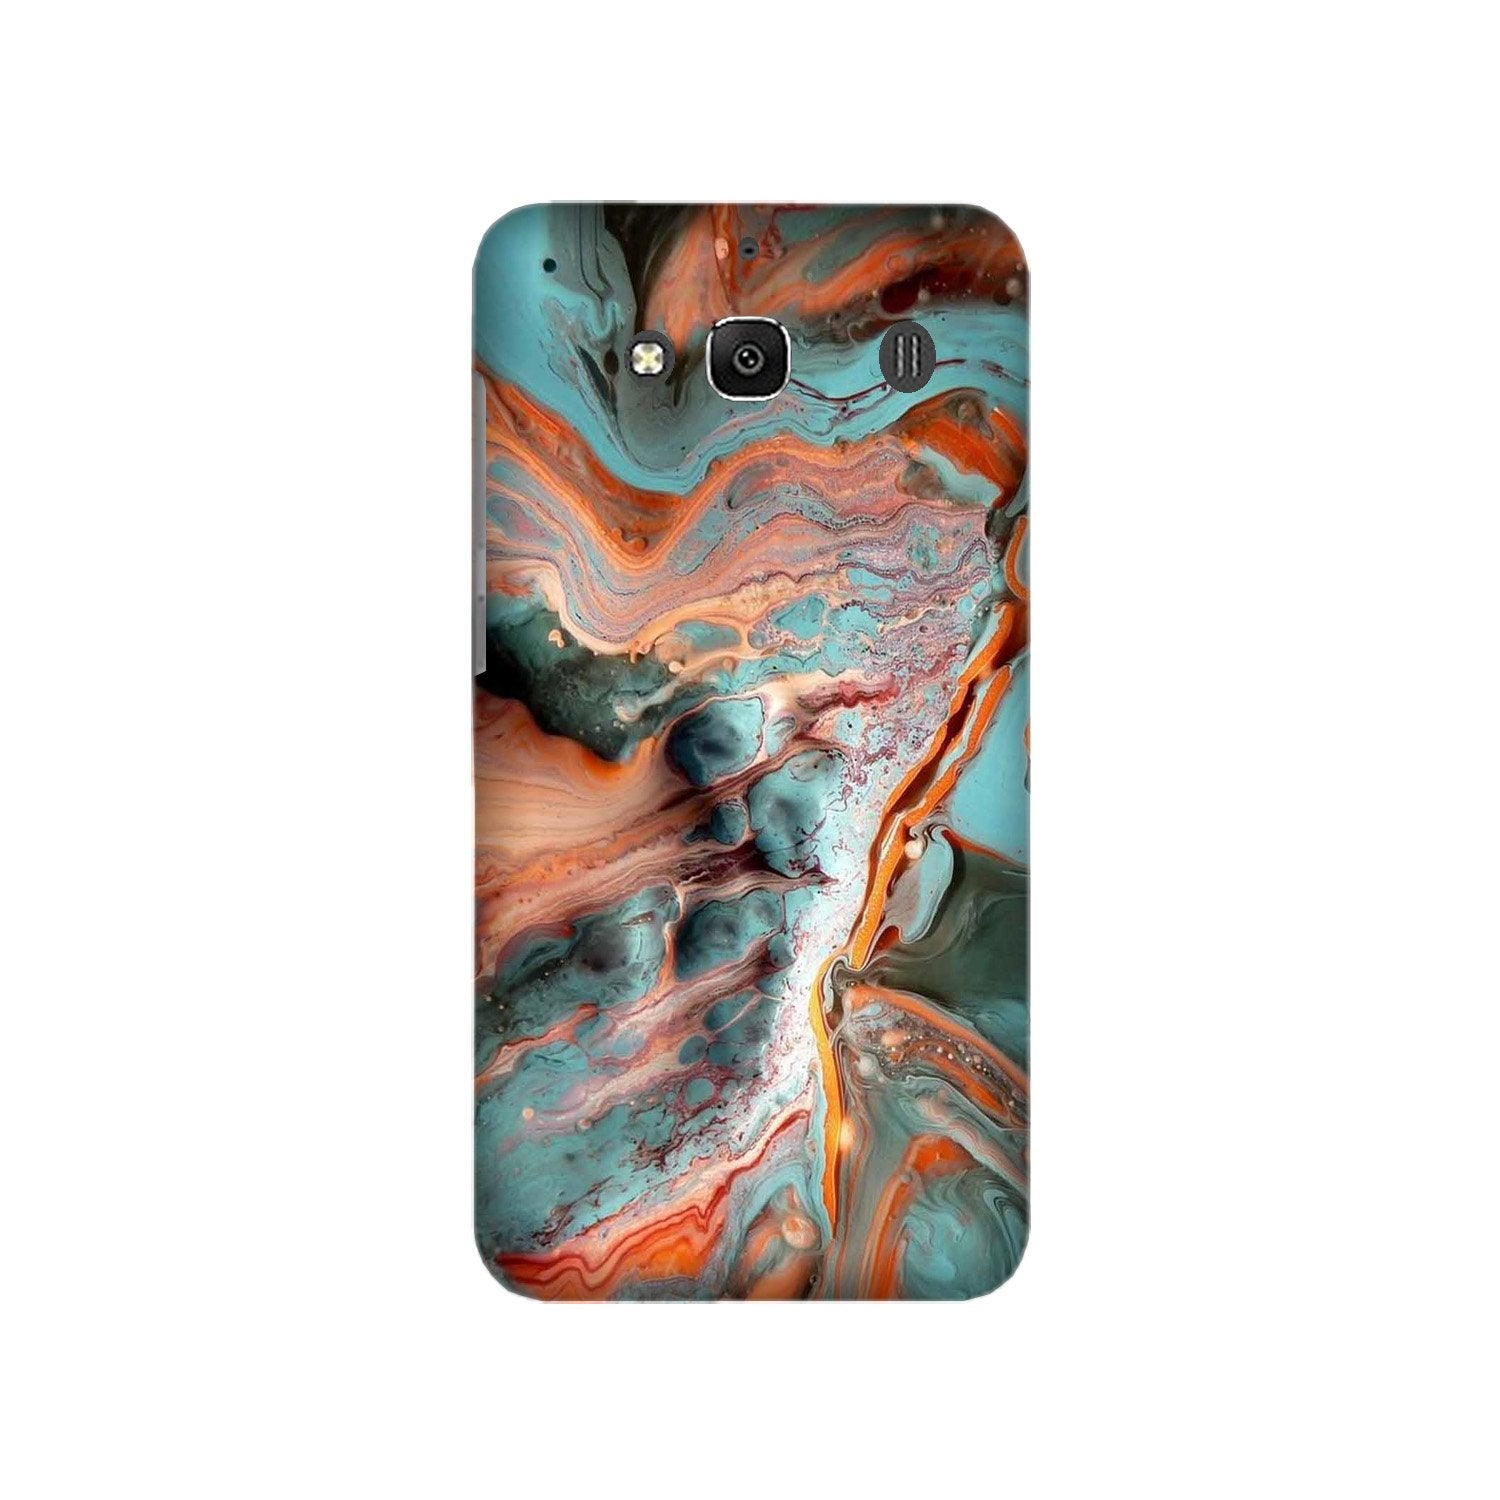 Marble Texture Mobile Back Case for Redmi 2 Prime  (Design - 309)